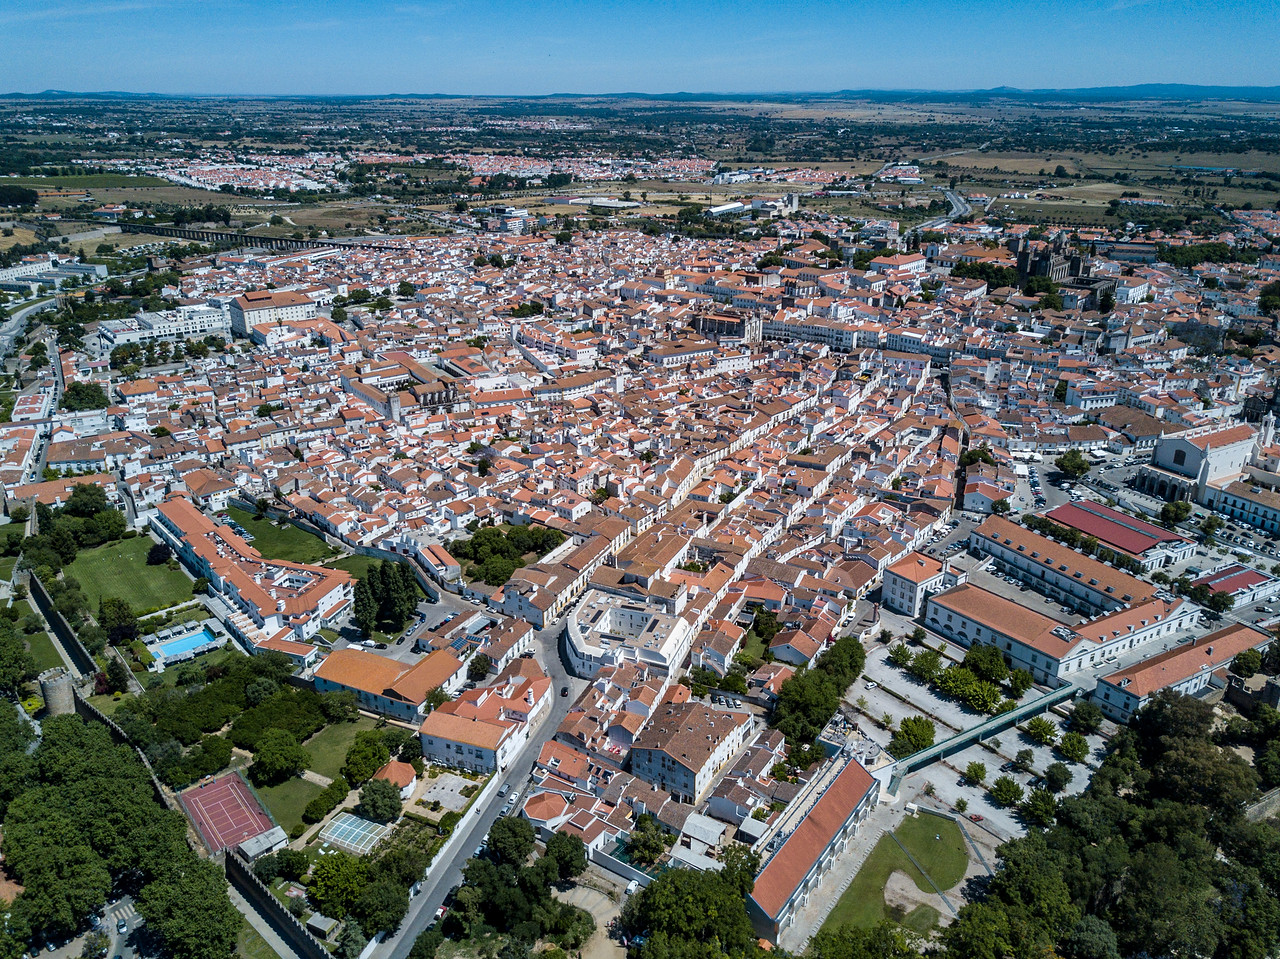 Drone Photo of the Red Tiles Roofs of Evora, Portugal